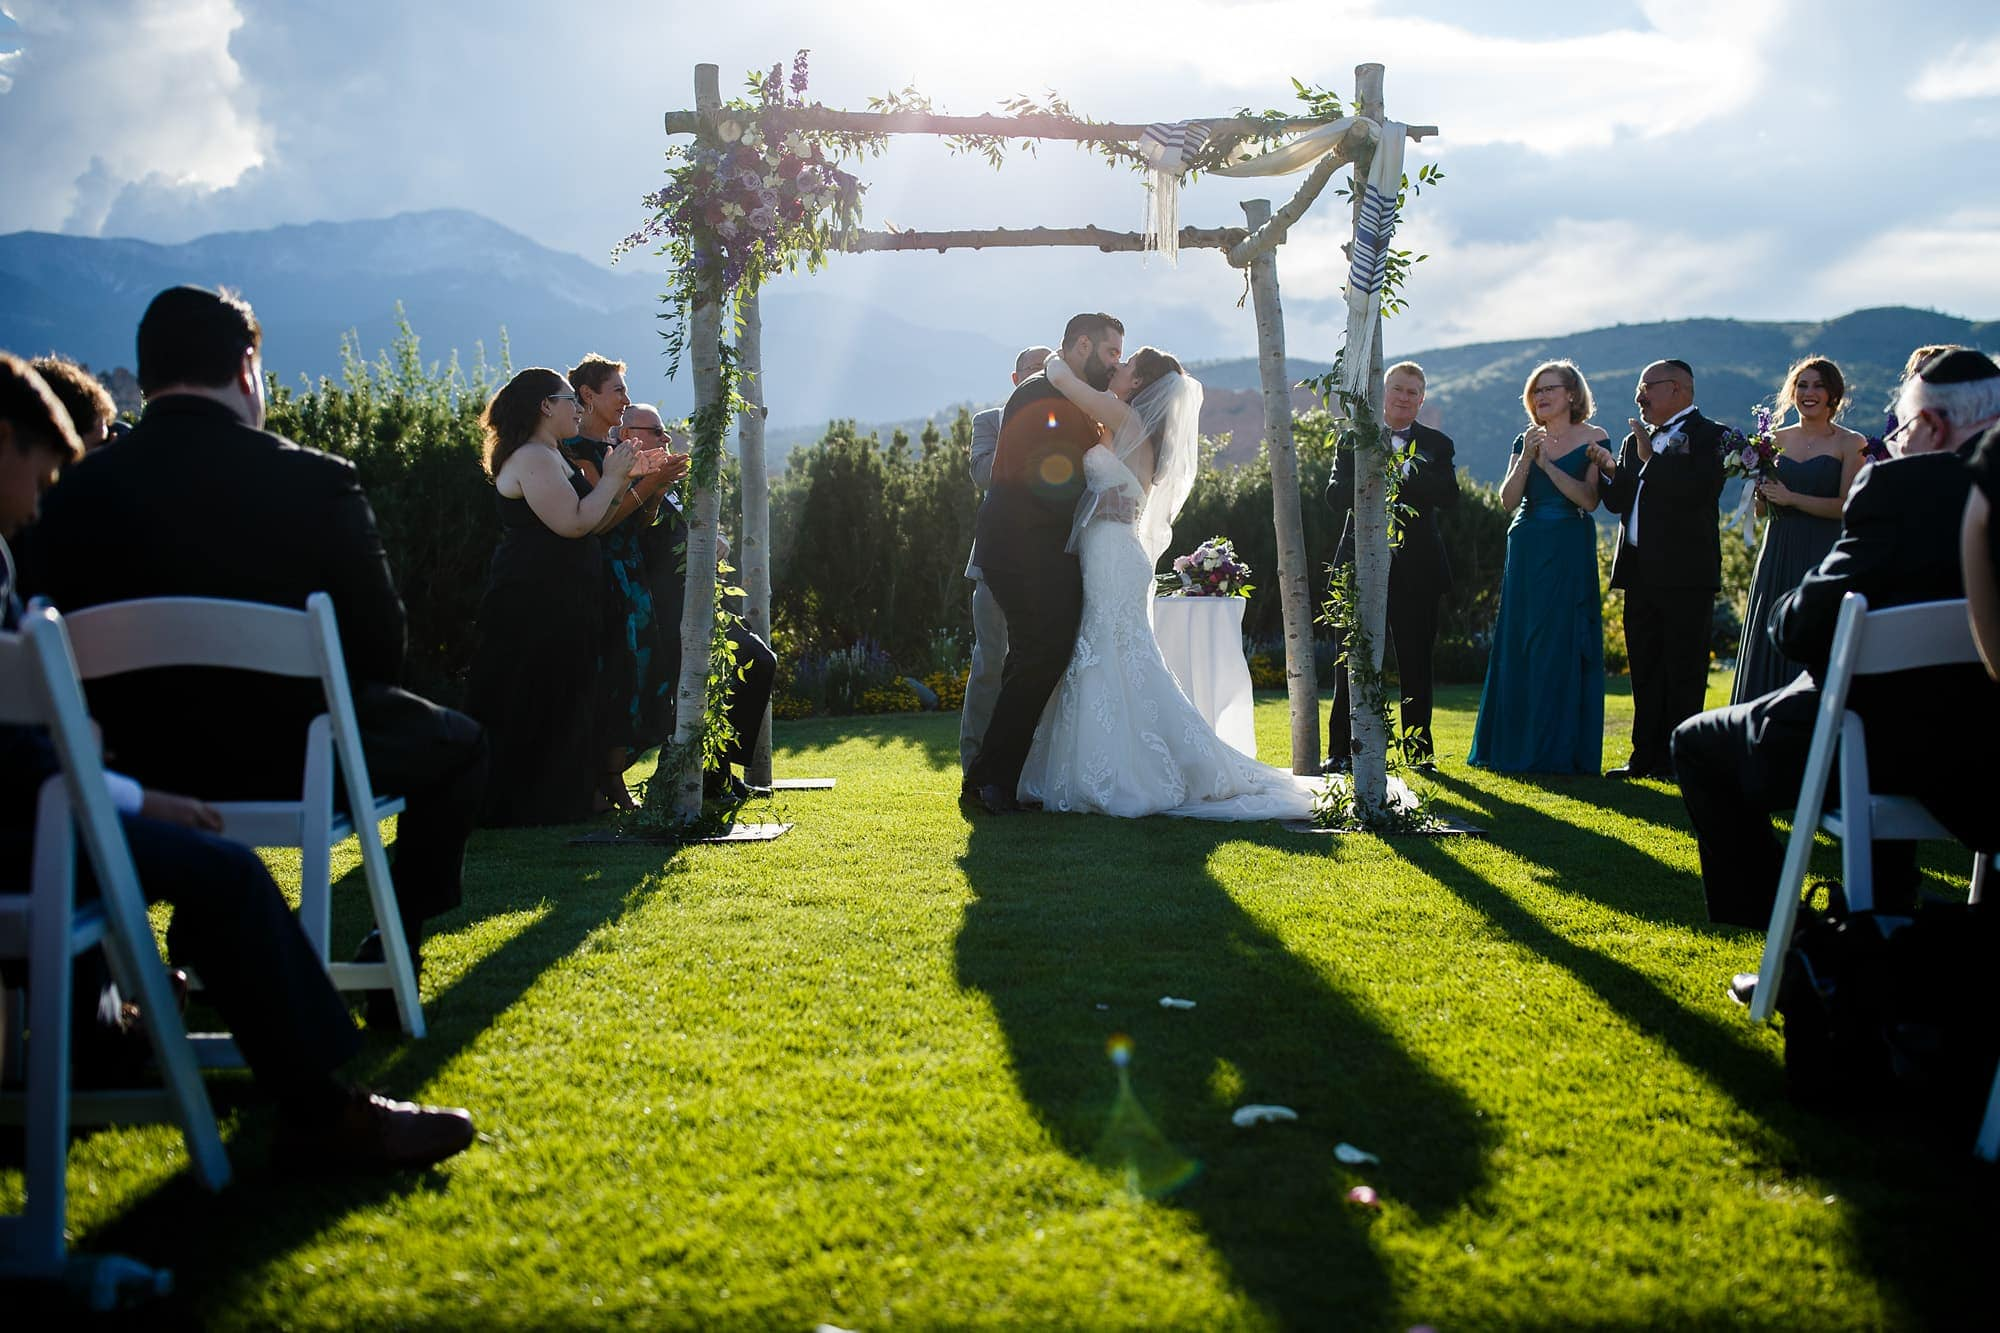 Devan and Joshua share their first kiss together under the chuppah made of aspen trees and flowers during their Jewish summer ceremony at Garden of the Gods Club